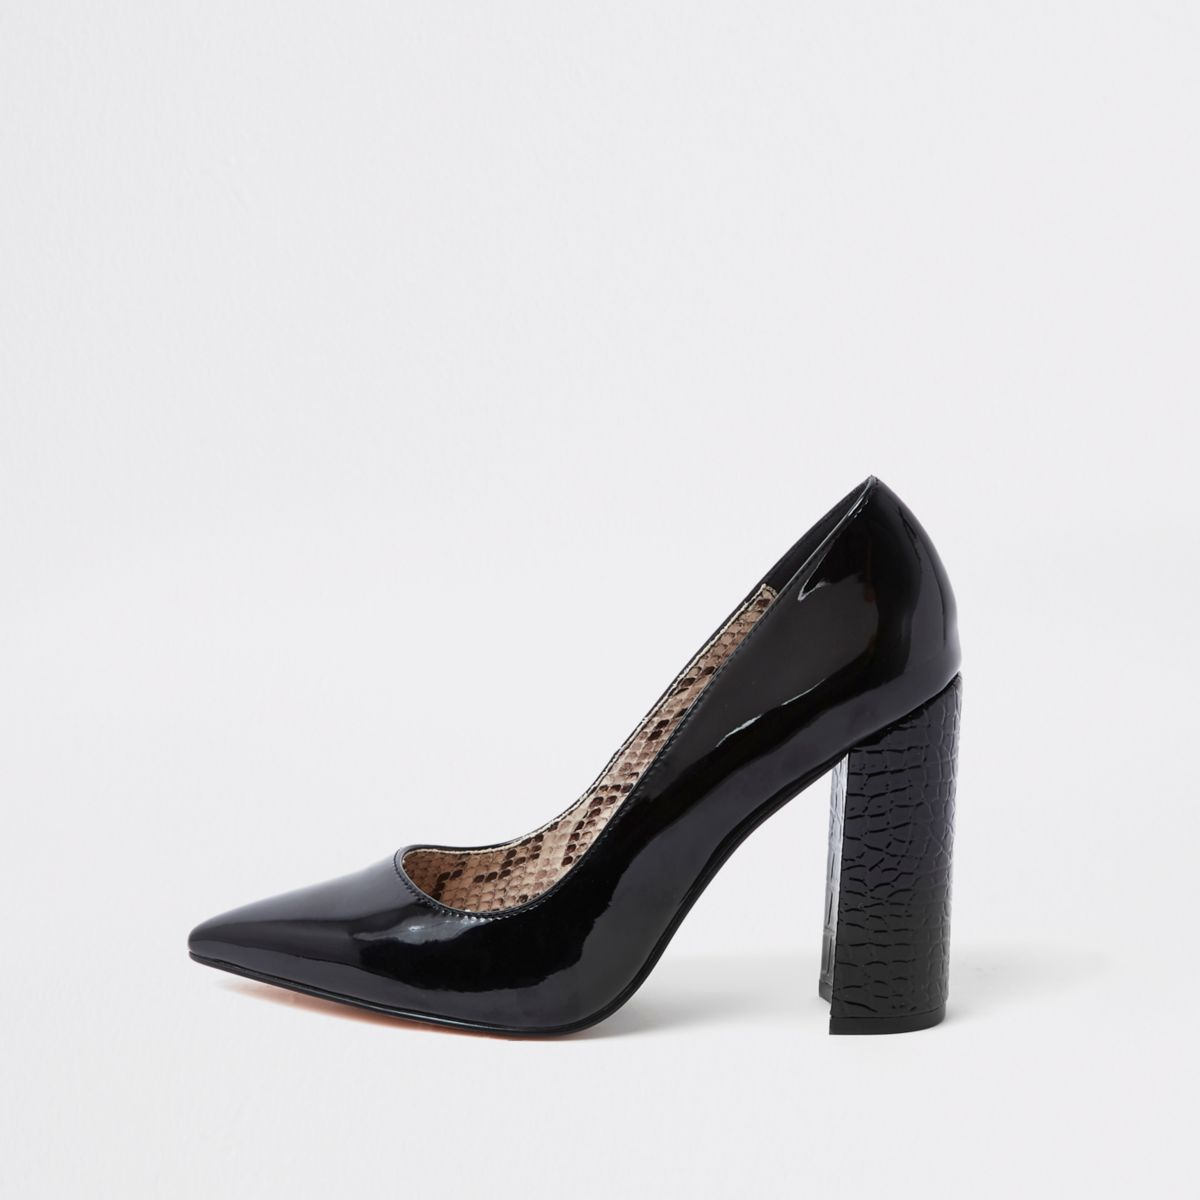 Black wrap around block heel pumps